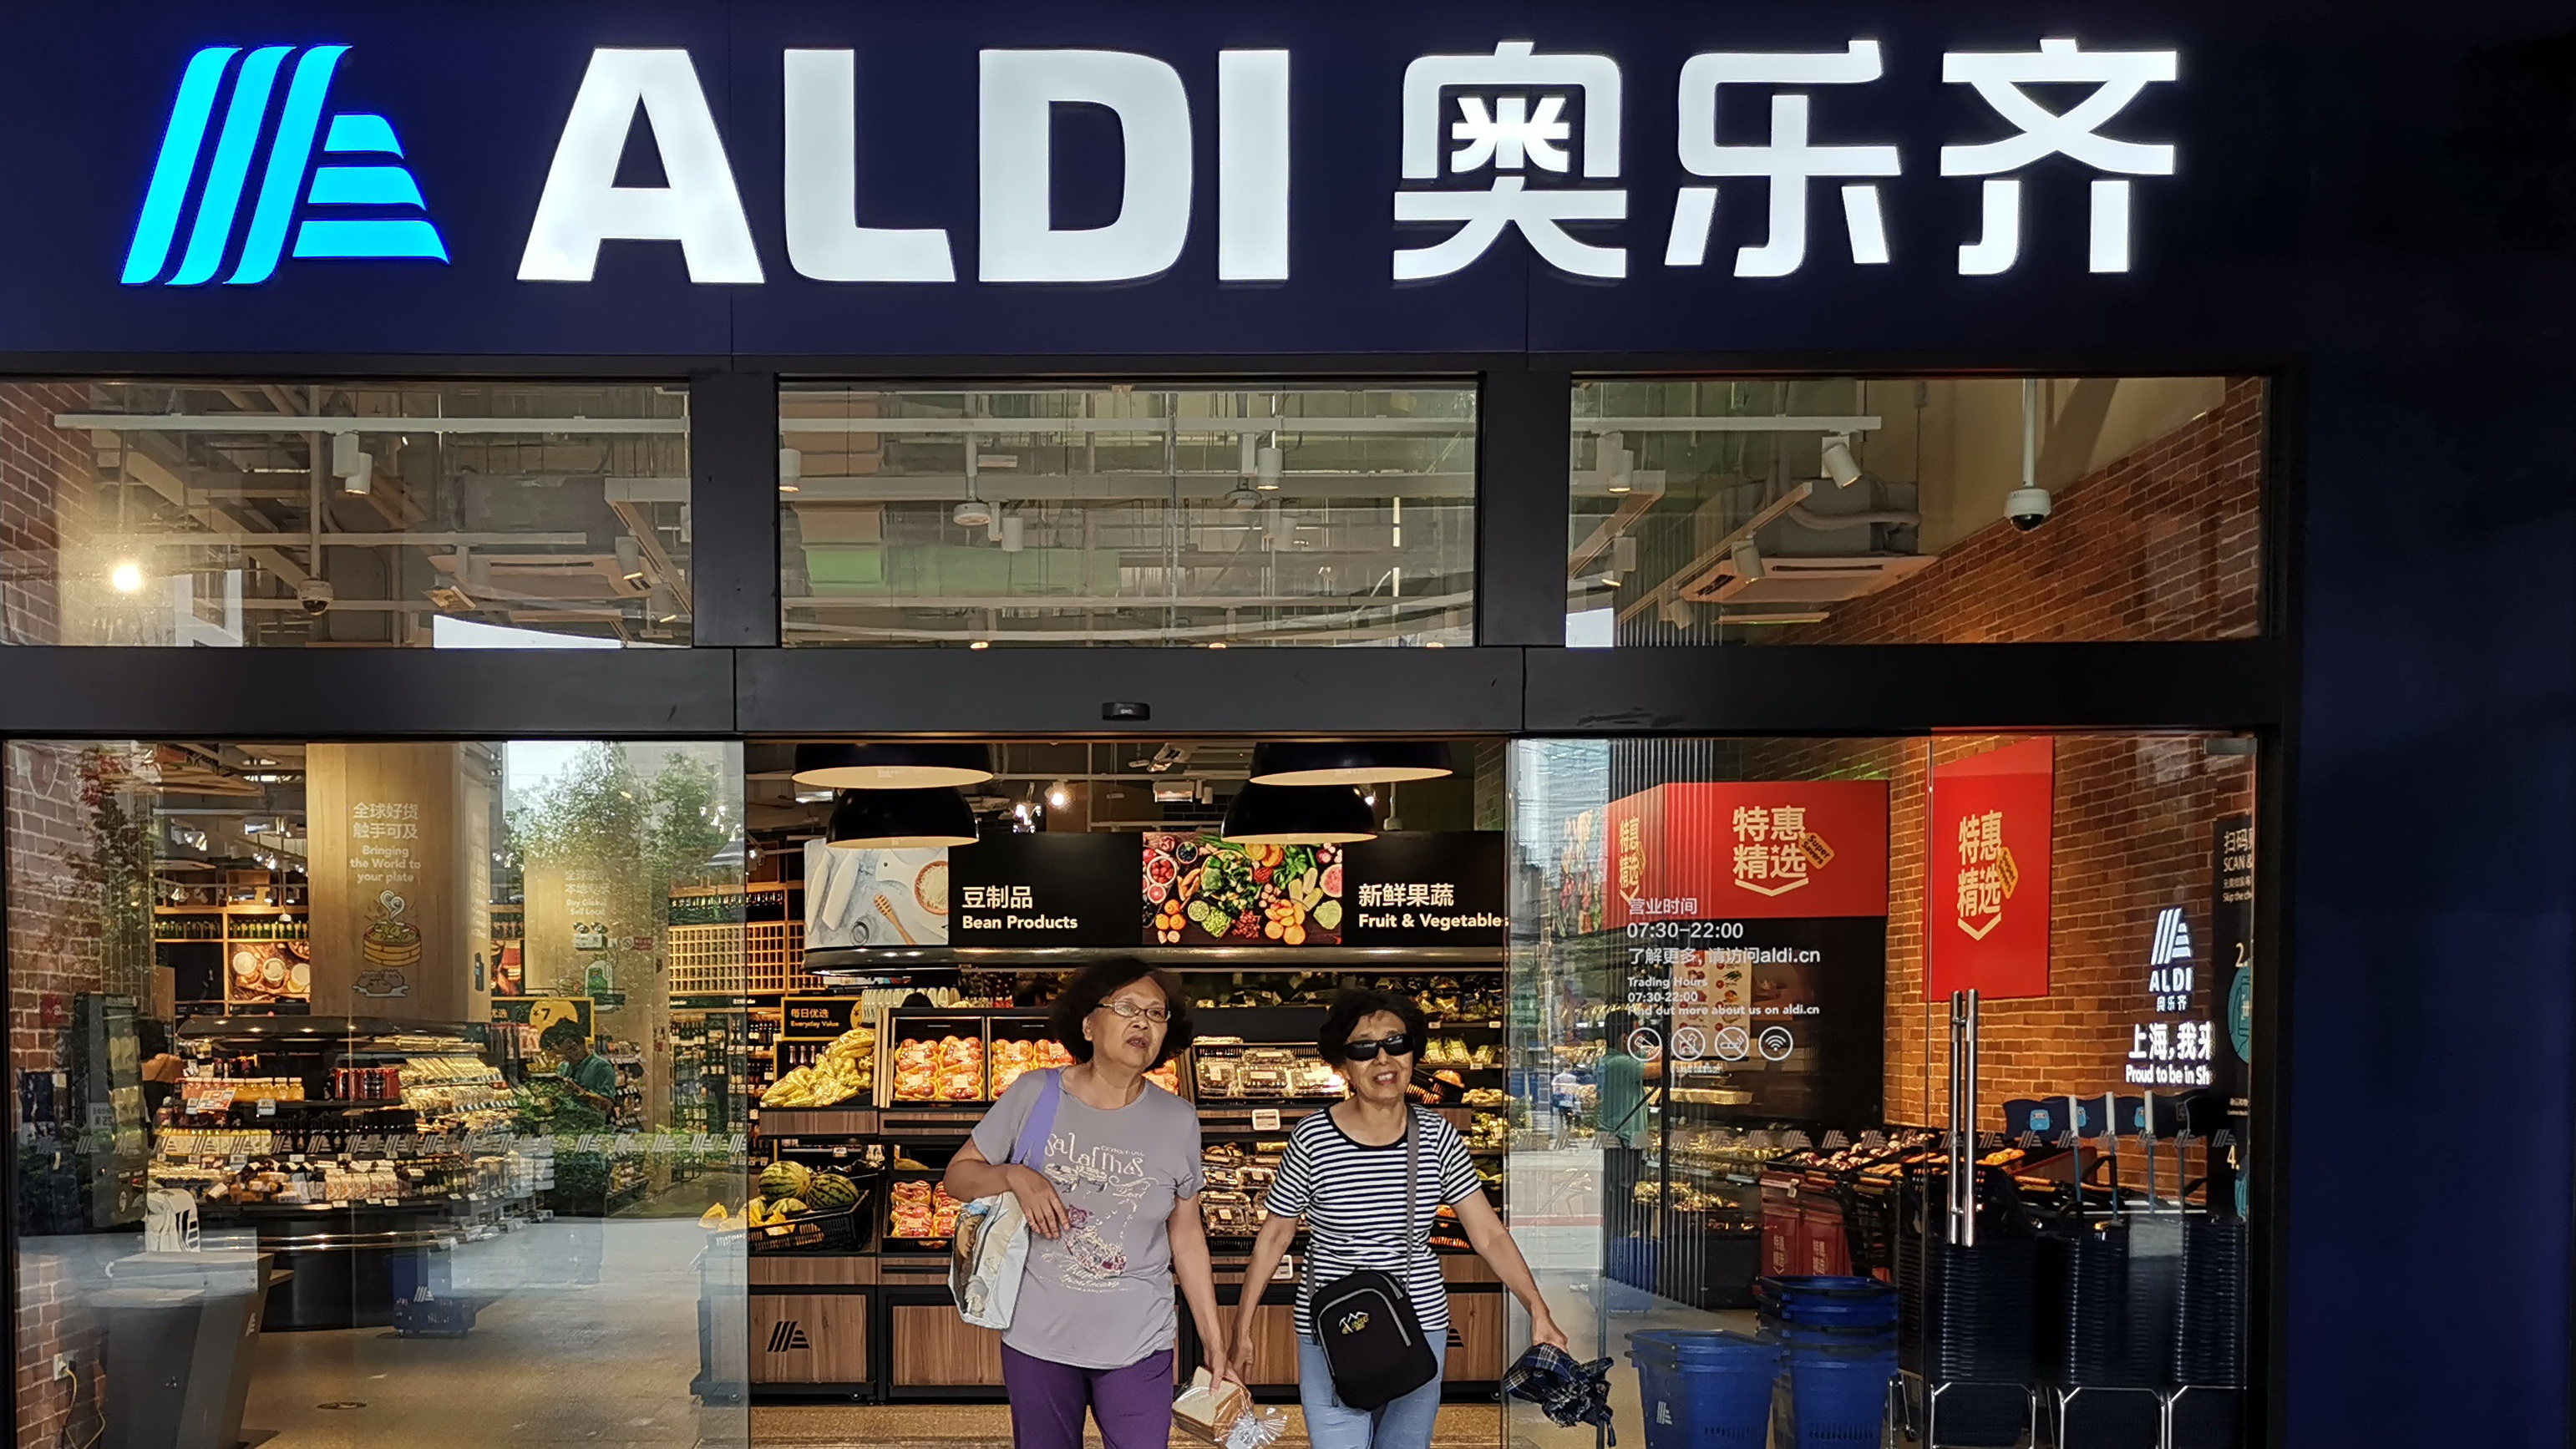 Aldi and Costco test China's retail appetite with fresh approaches